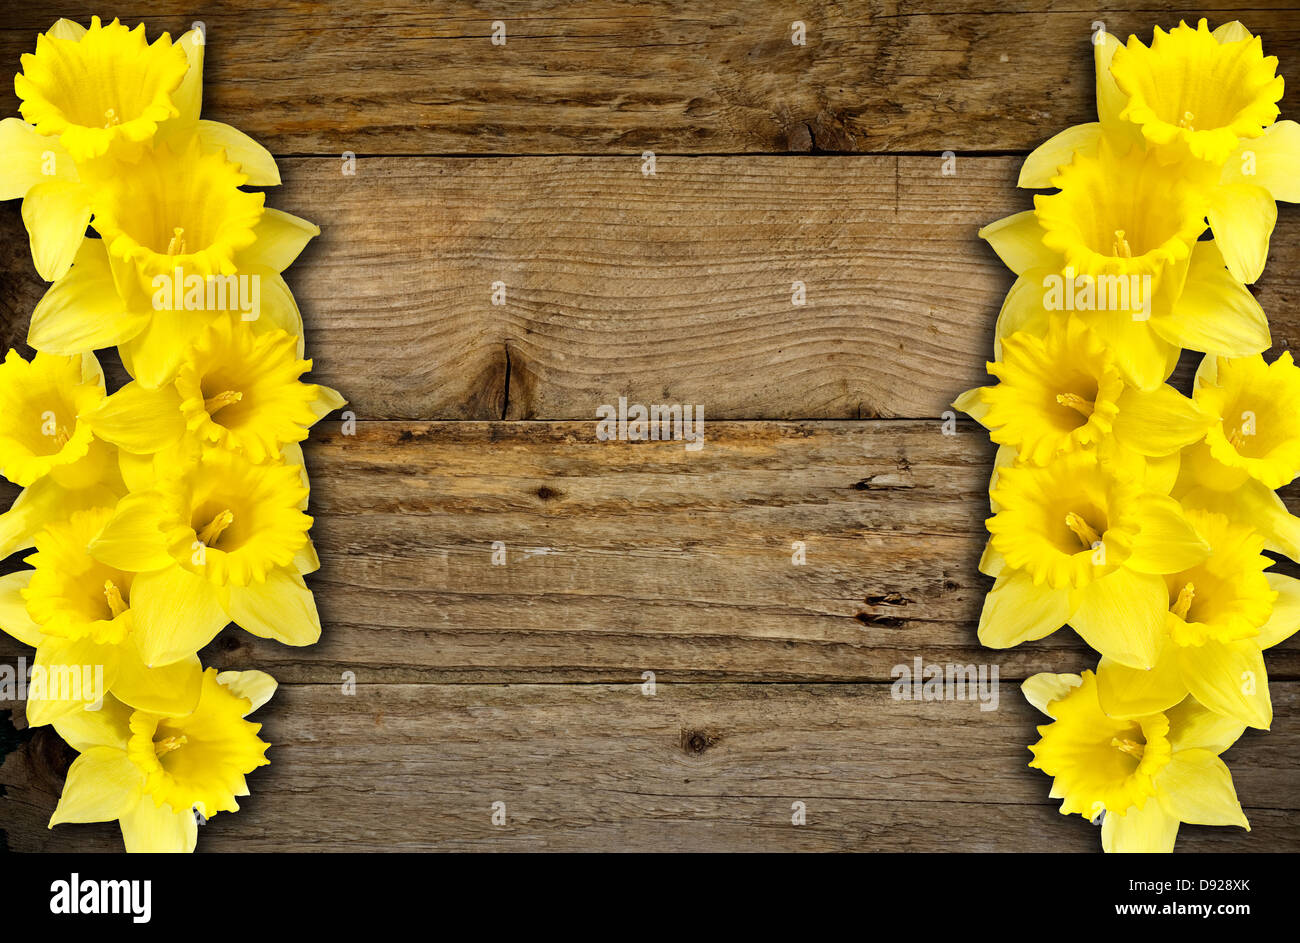 wooden plank rustic background with a daffodil border great for springtime - Stock Image